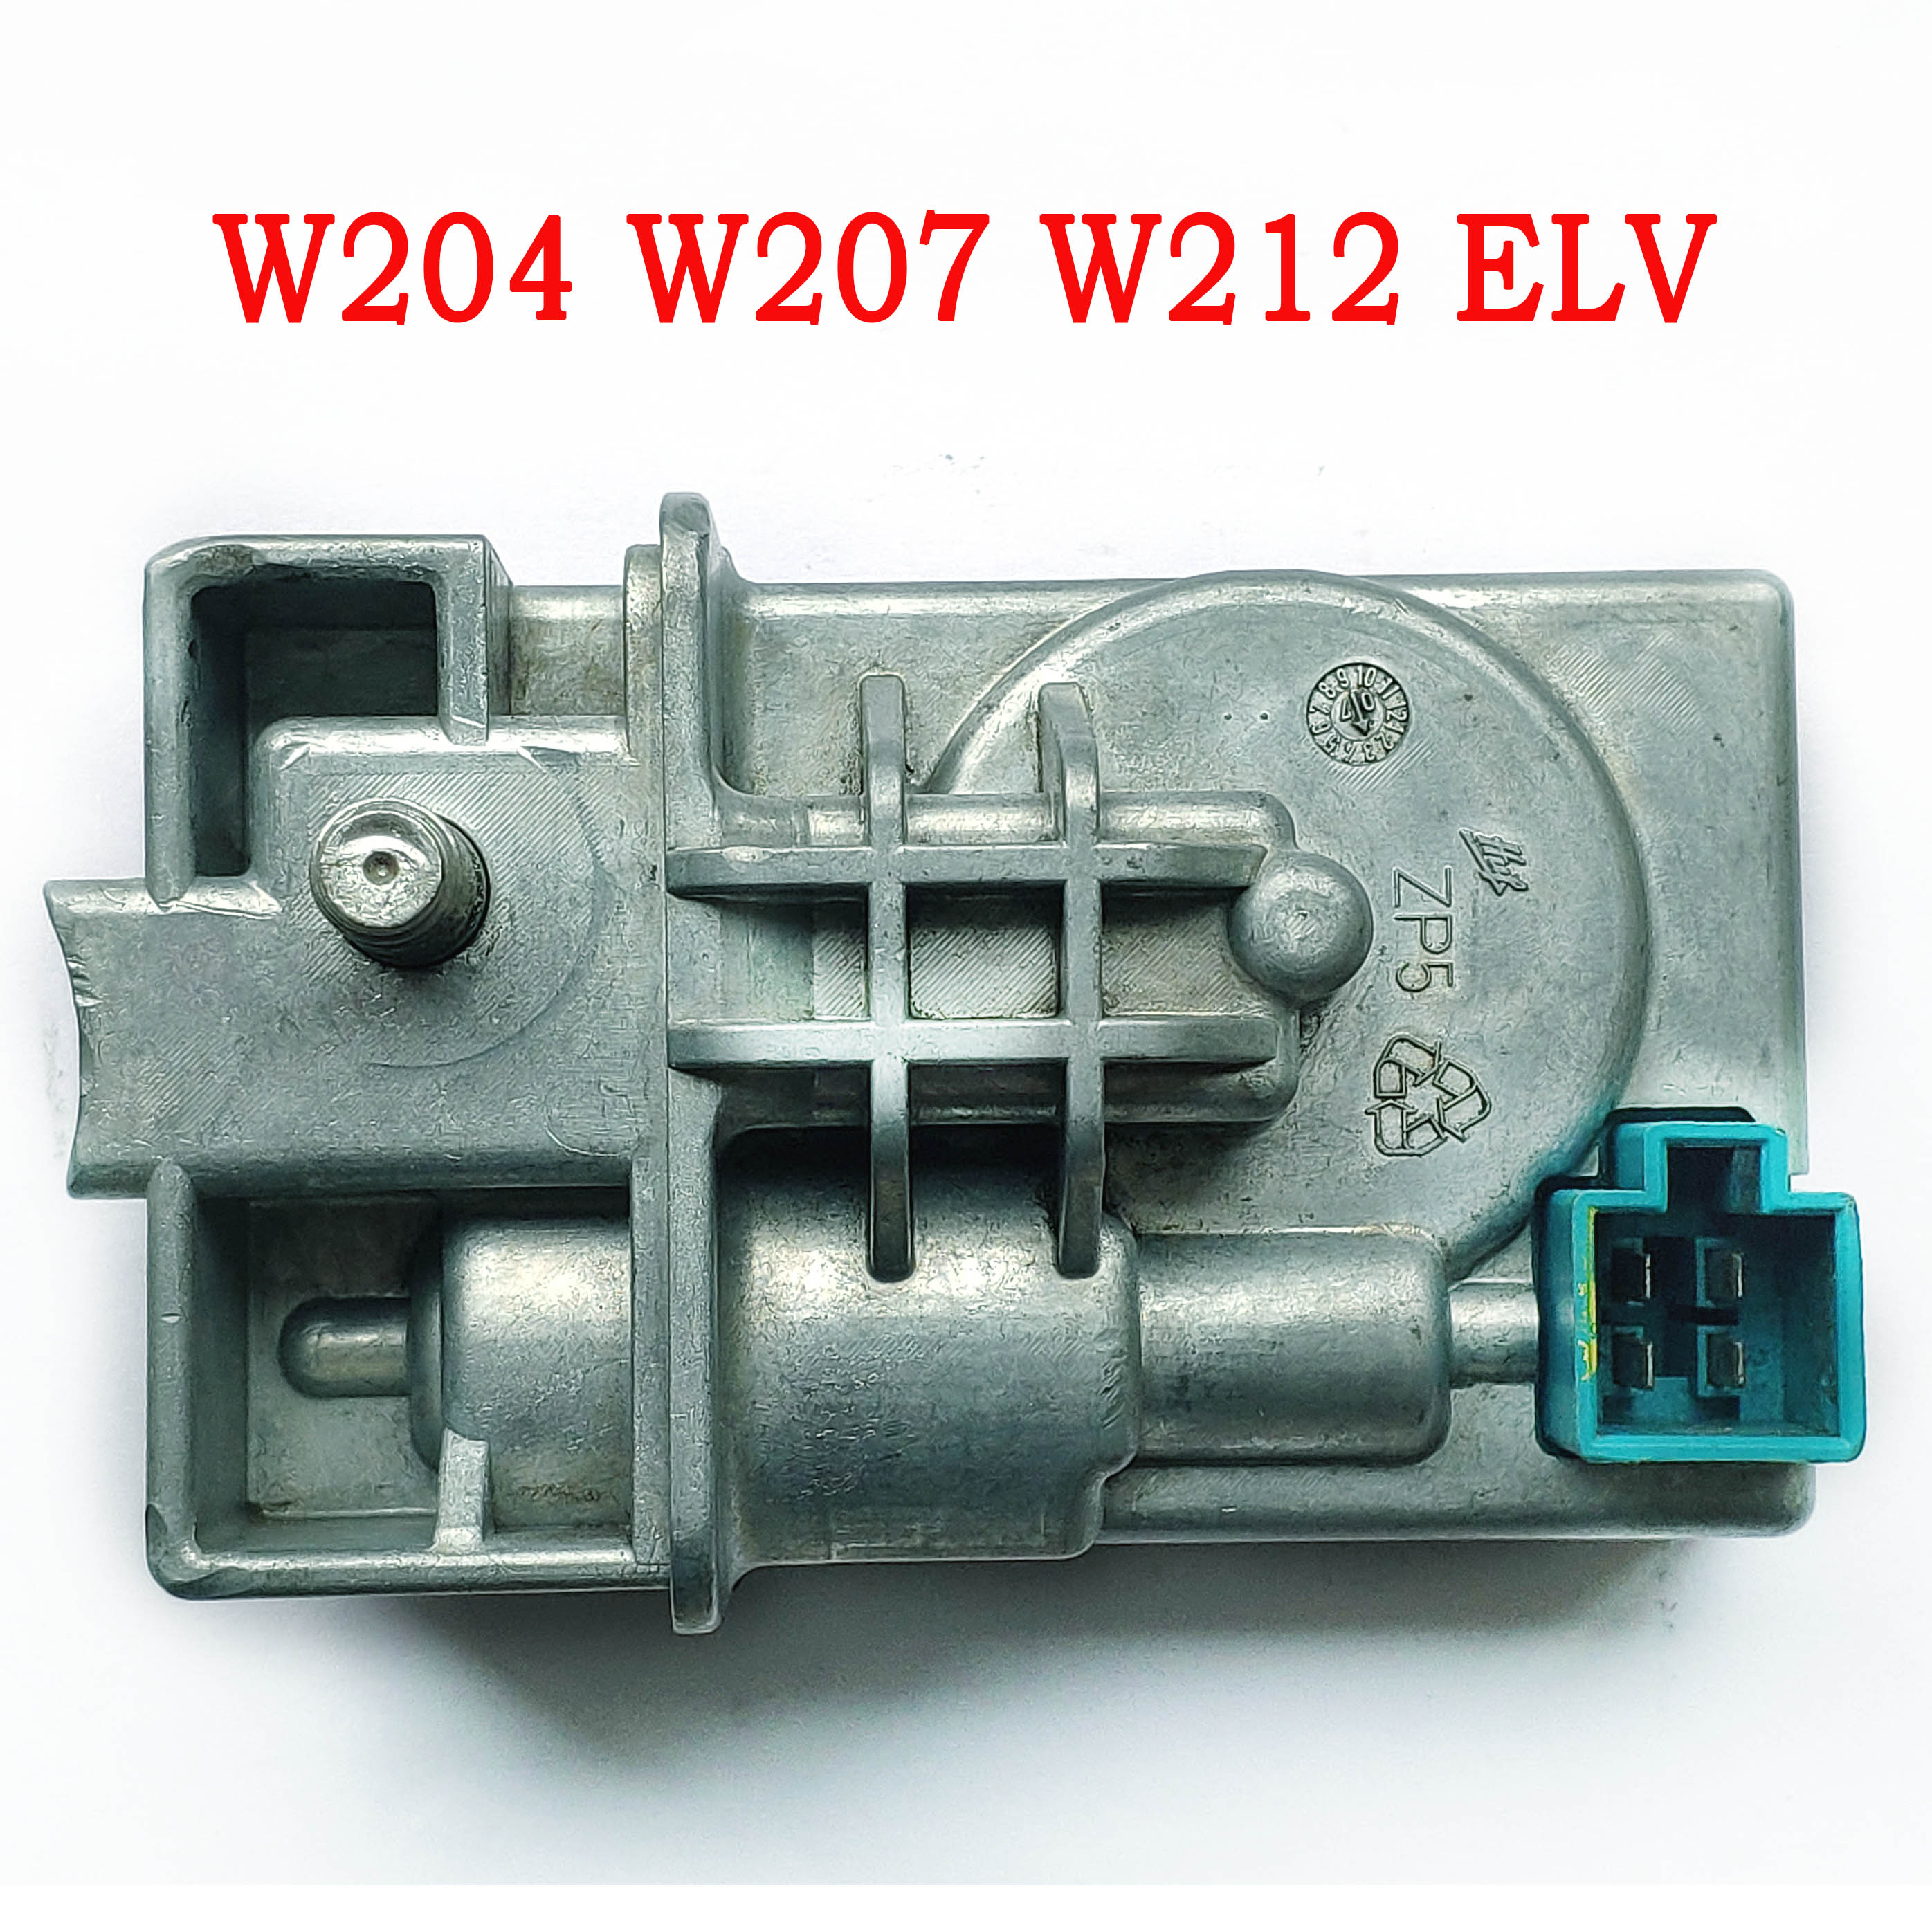 Original Refurbished ESL ELV for Mercedes Benz W204 W207 W212